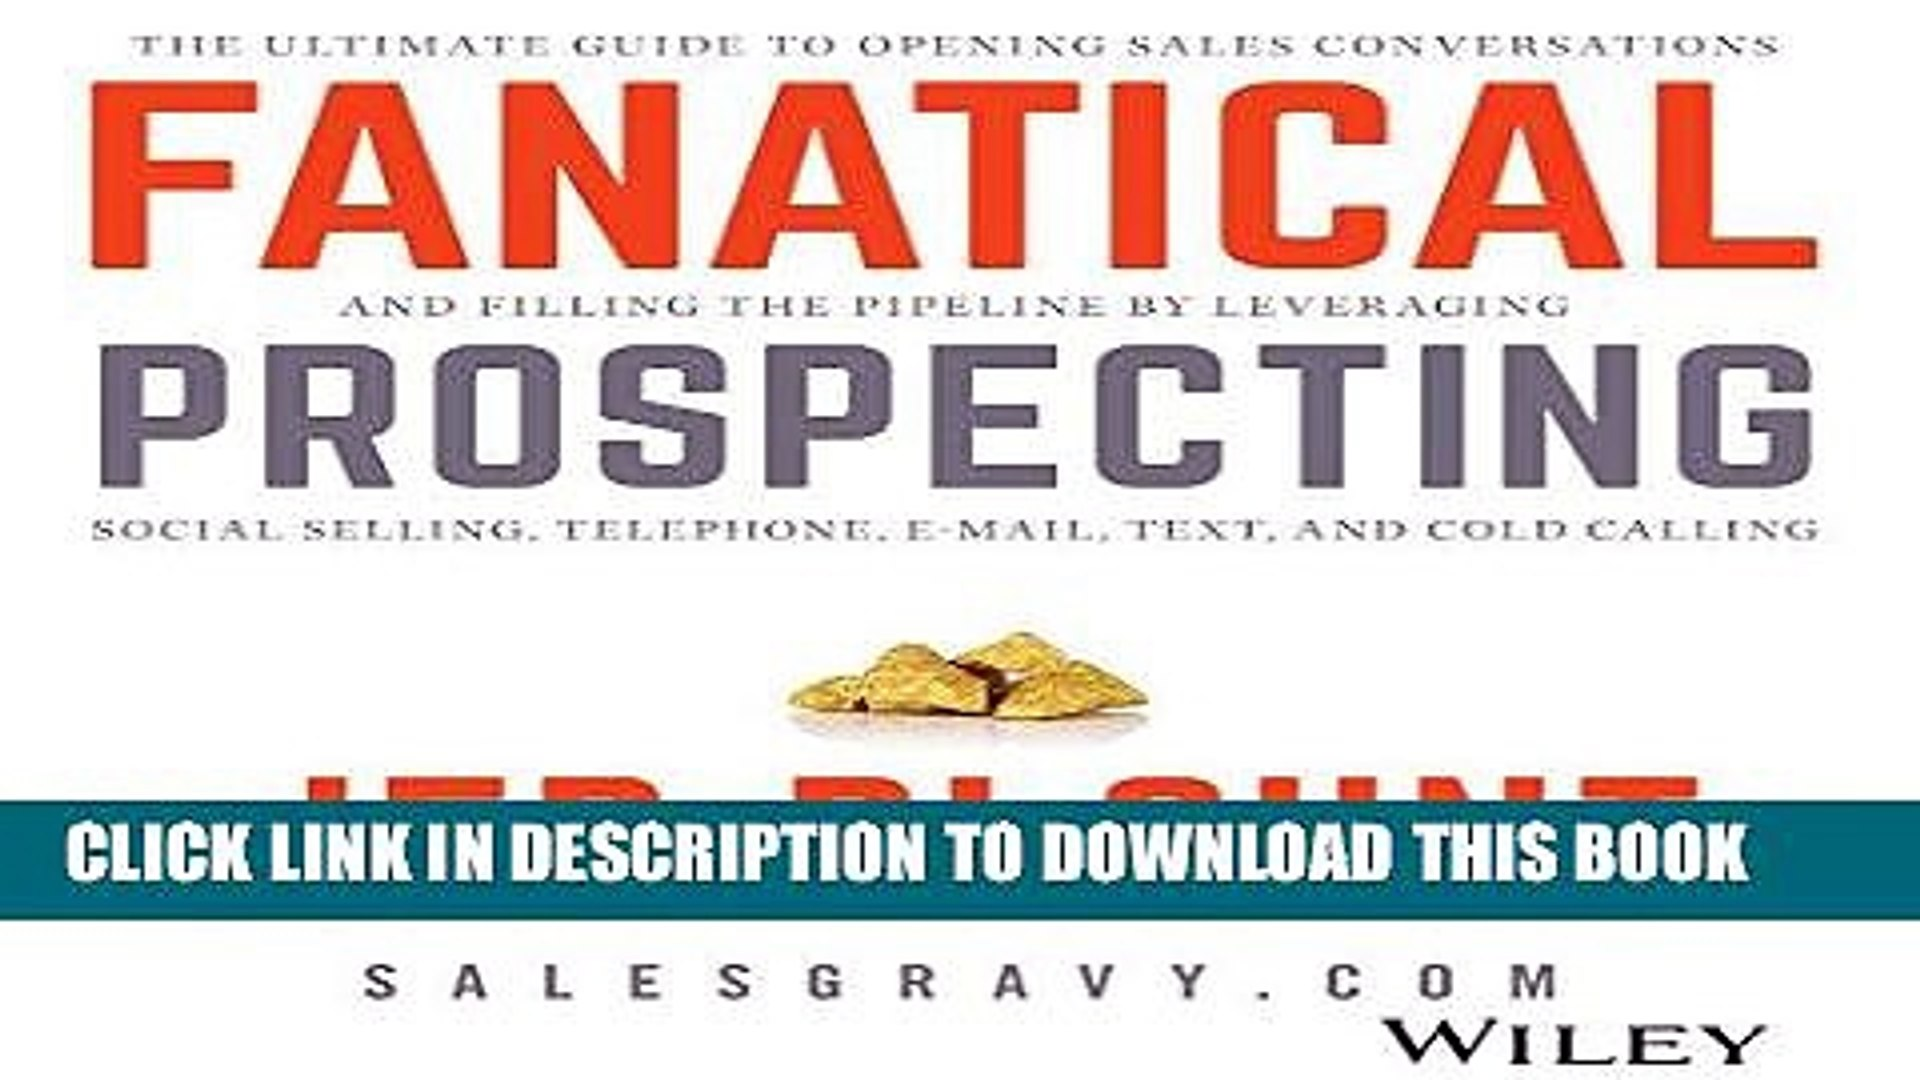 Pdf Free Fanatical Prospecting The Ultimate Guide For Starting Sales Conversations And Filling Video Dailymotion